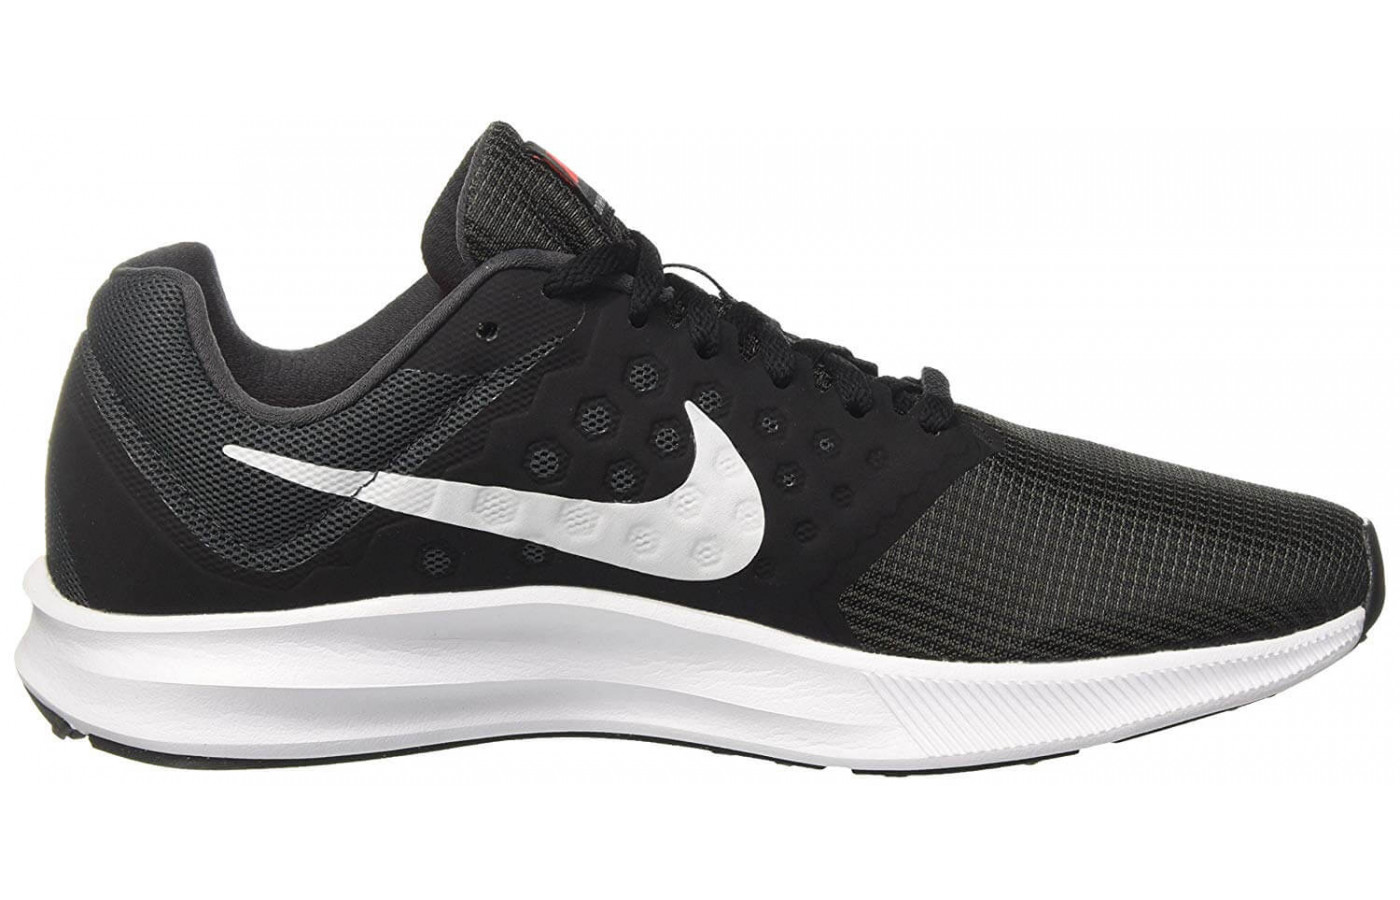 Nike Downshifter 7 Medial